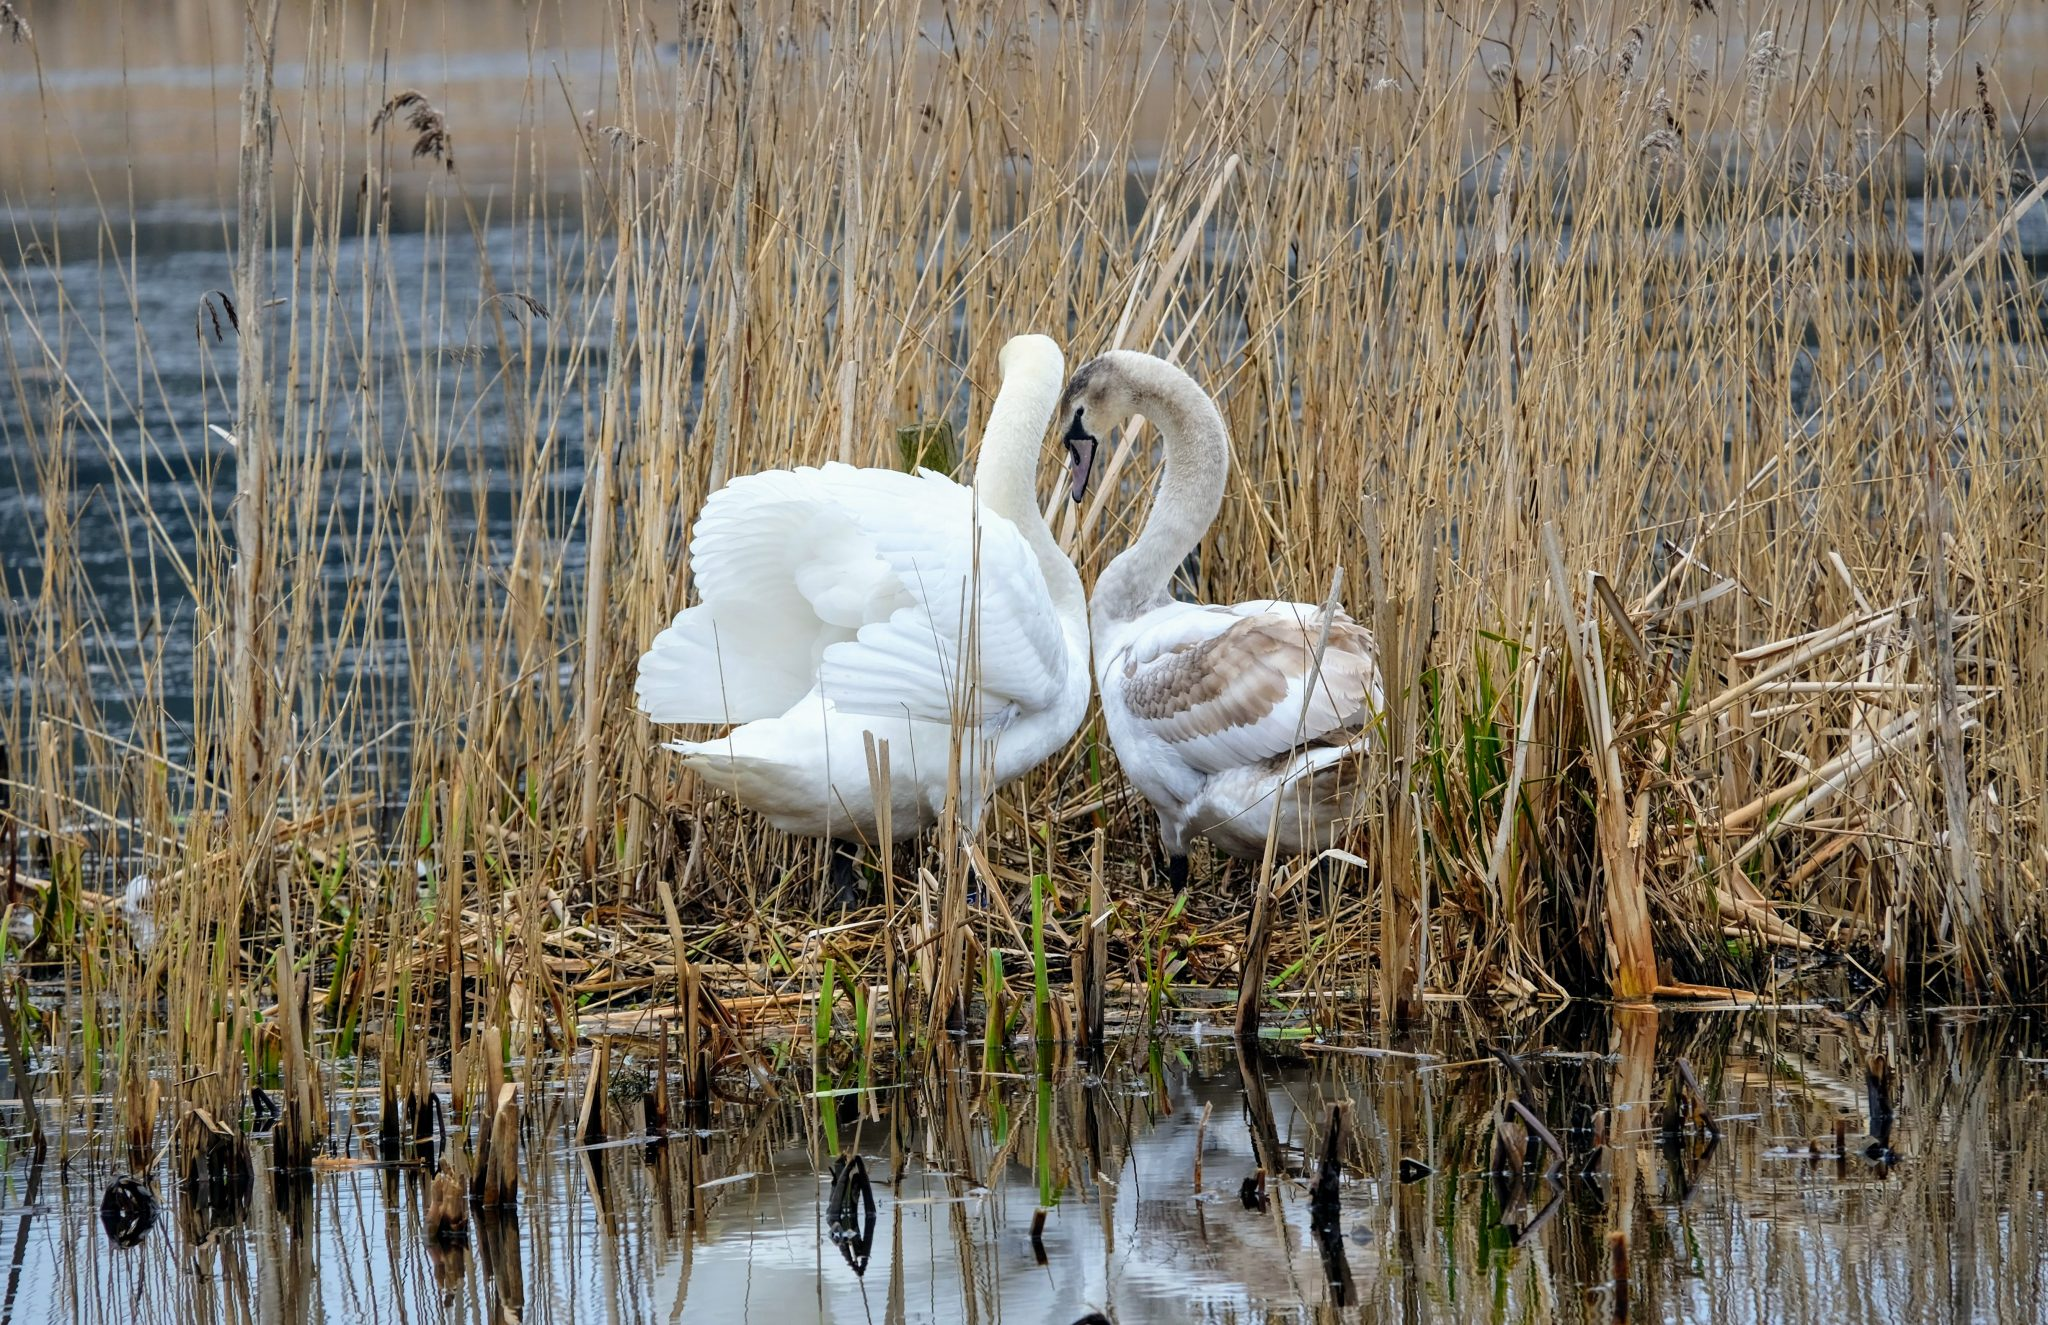 Swans at RSPB Leighton Moss